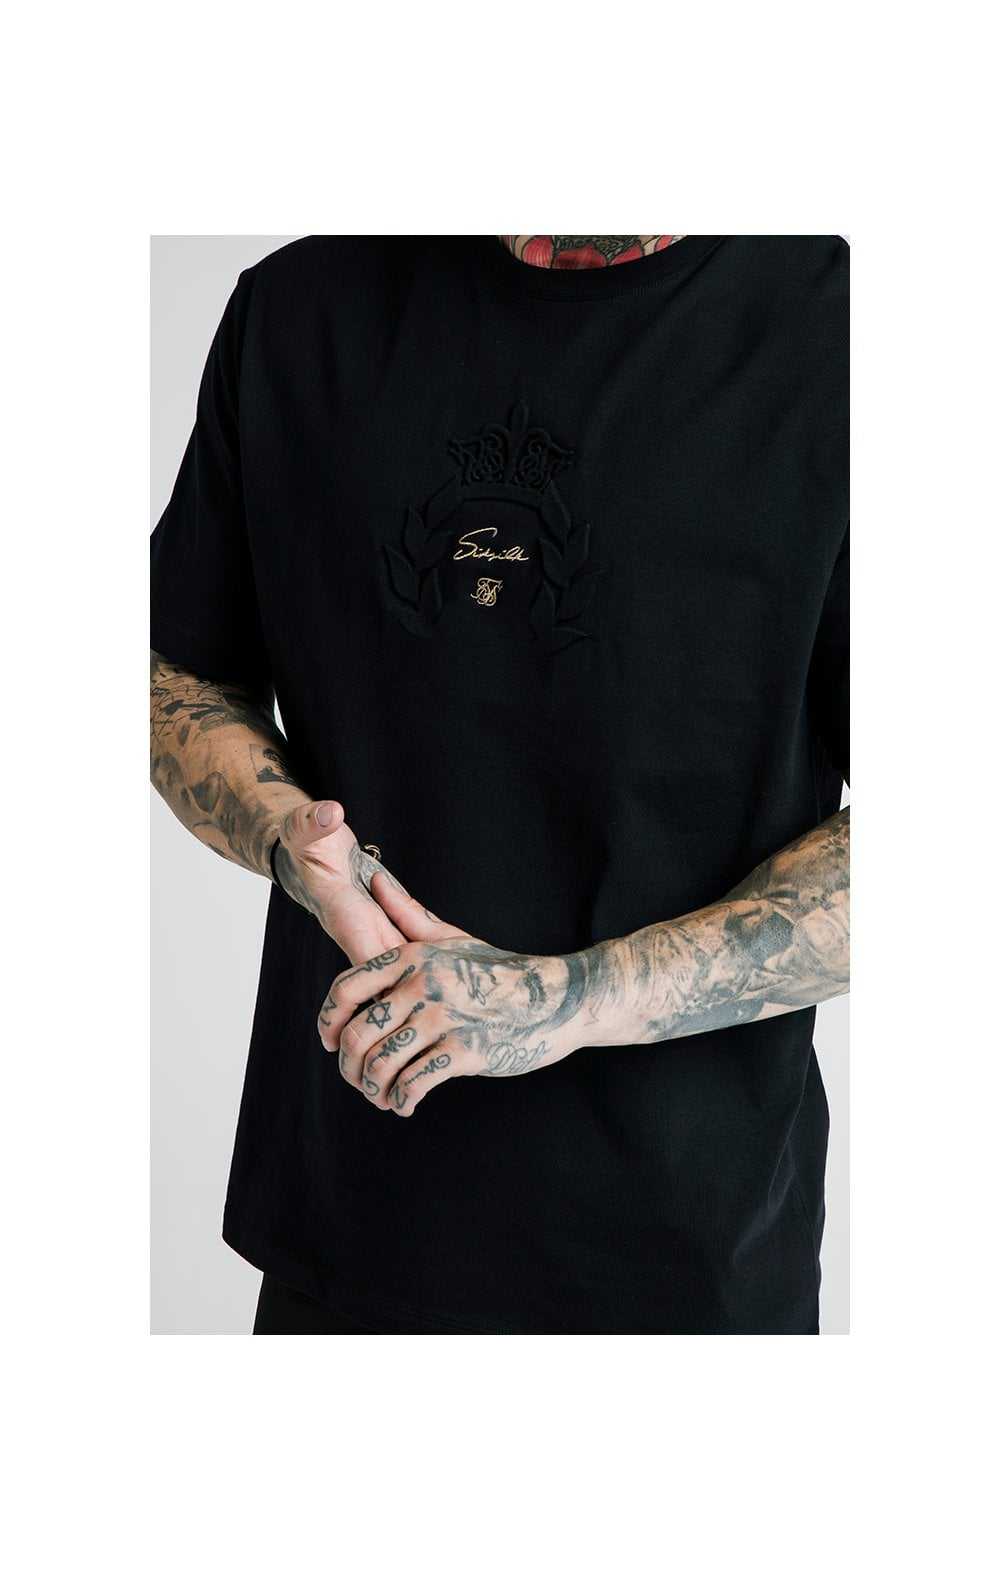 Laden Sie das Bild in den Galerie-Viewer, SikSilk X Dani Alves Luxus T-Shirt Kurzarm - Schwarz (1)